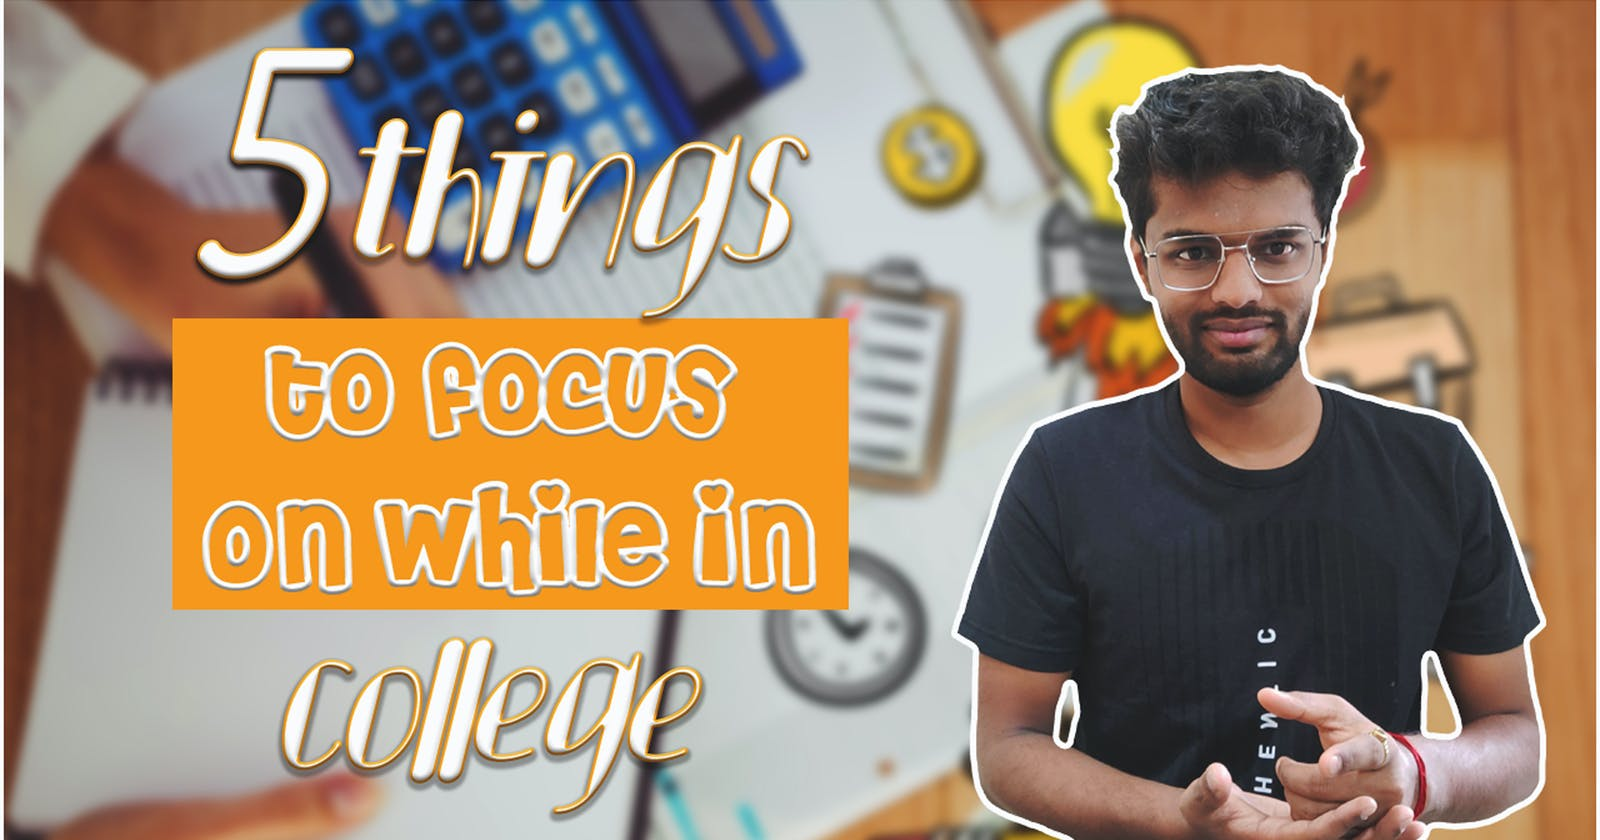 5 things to focus on while in college | Tips for college students